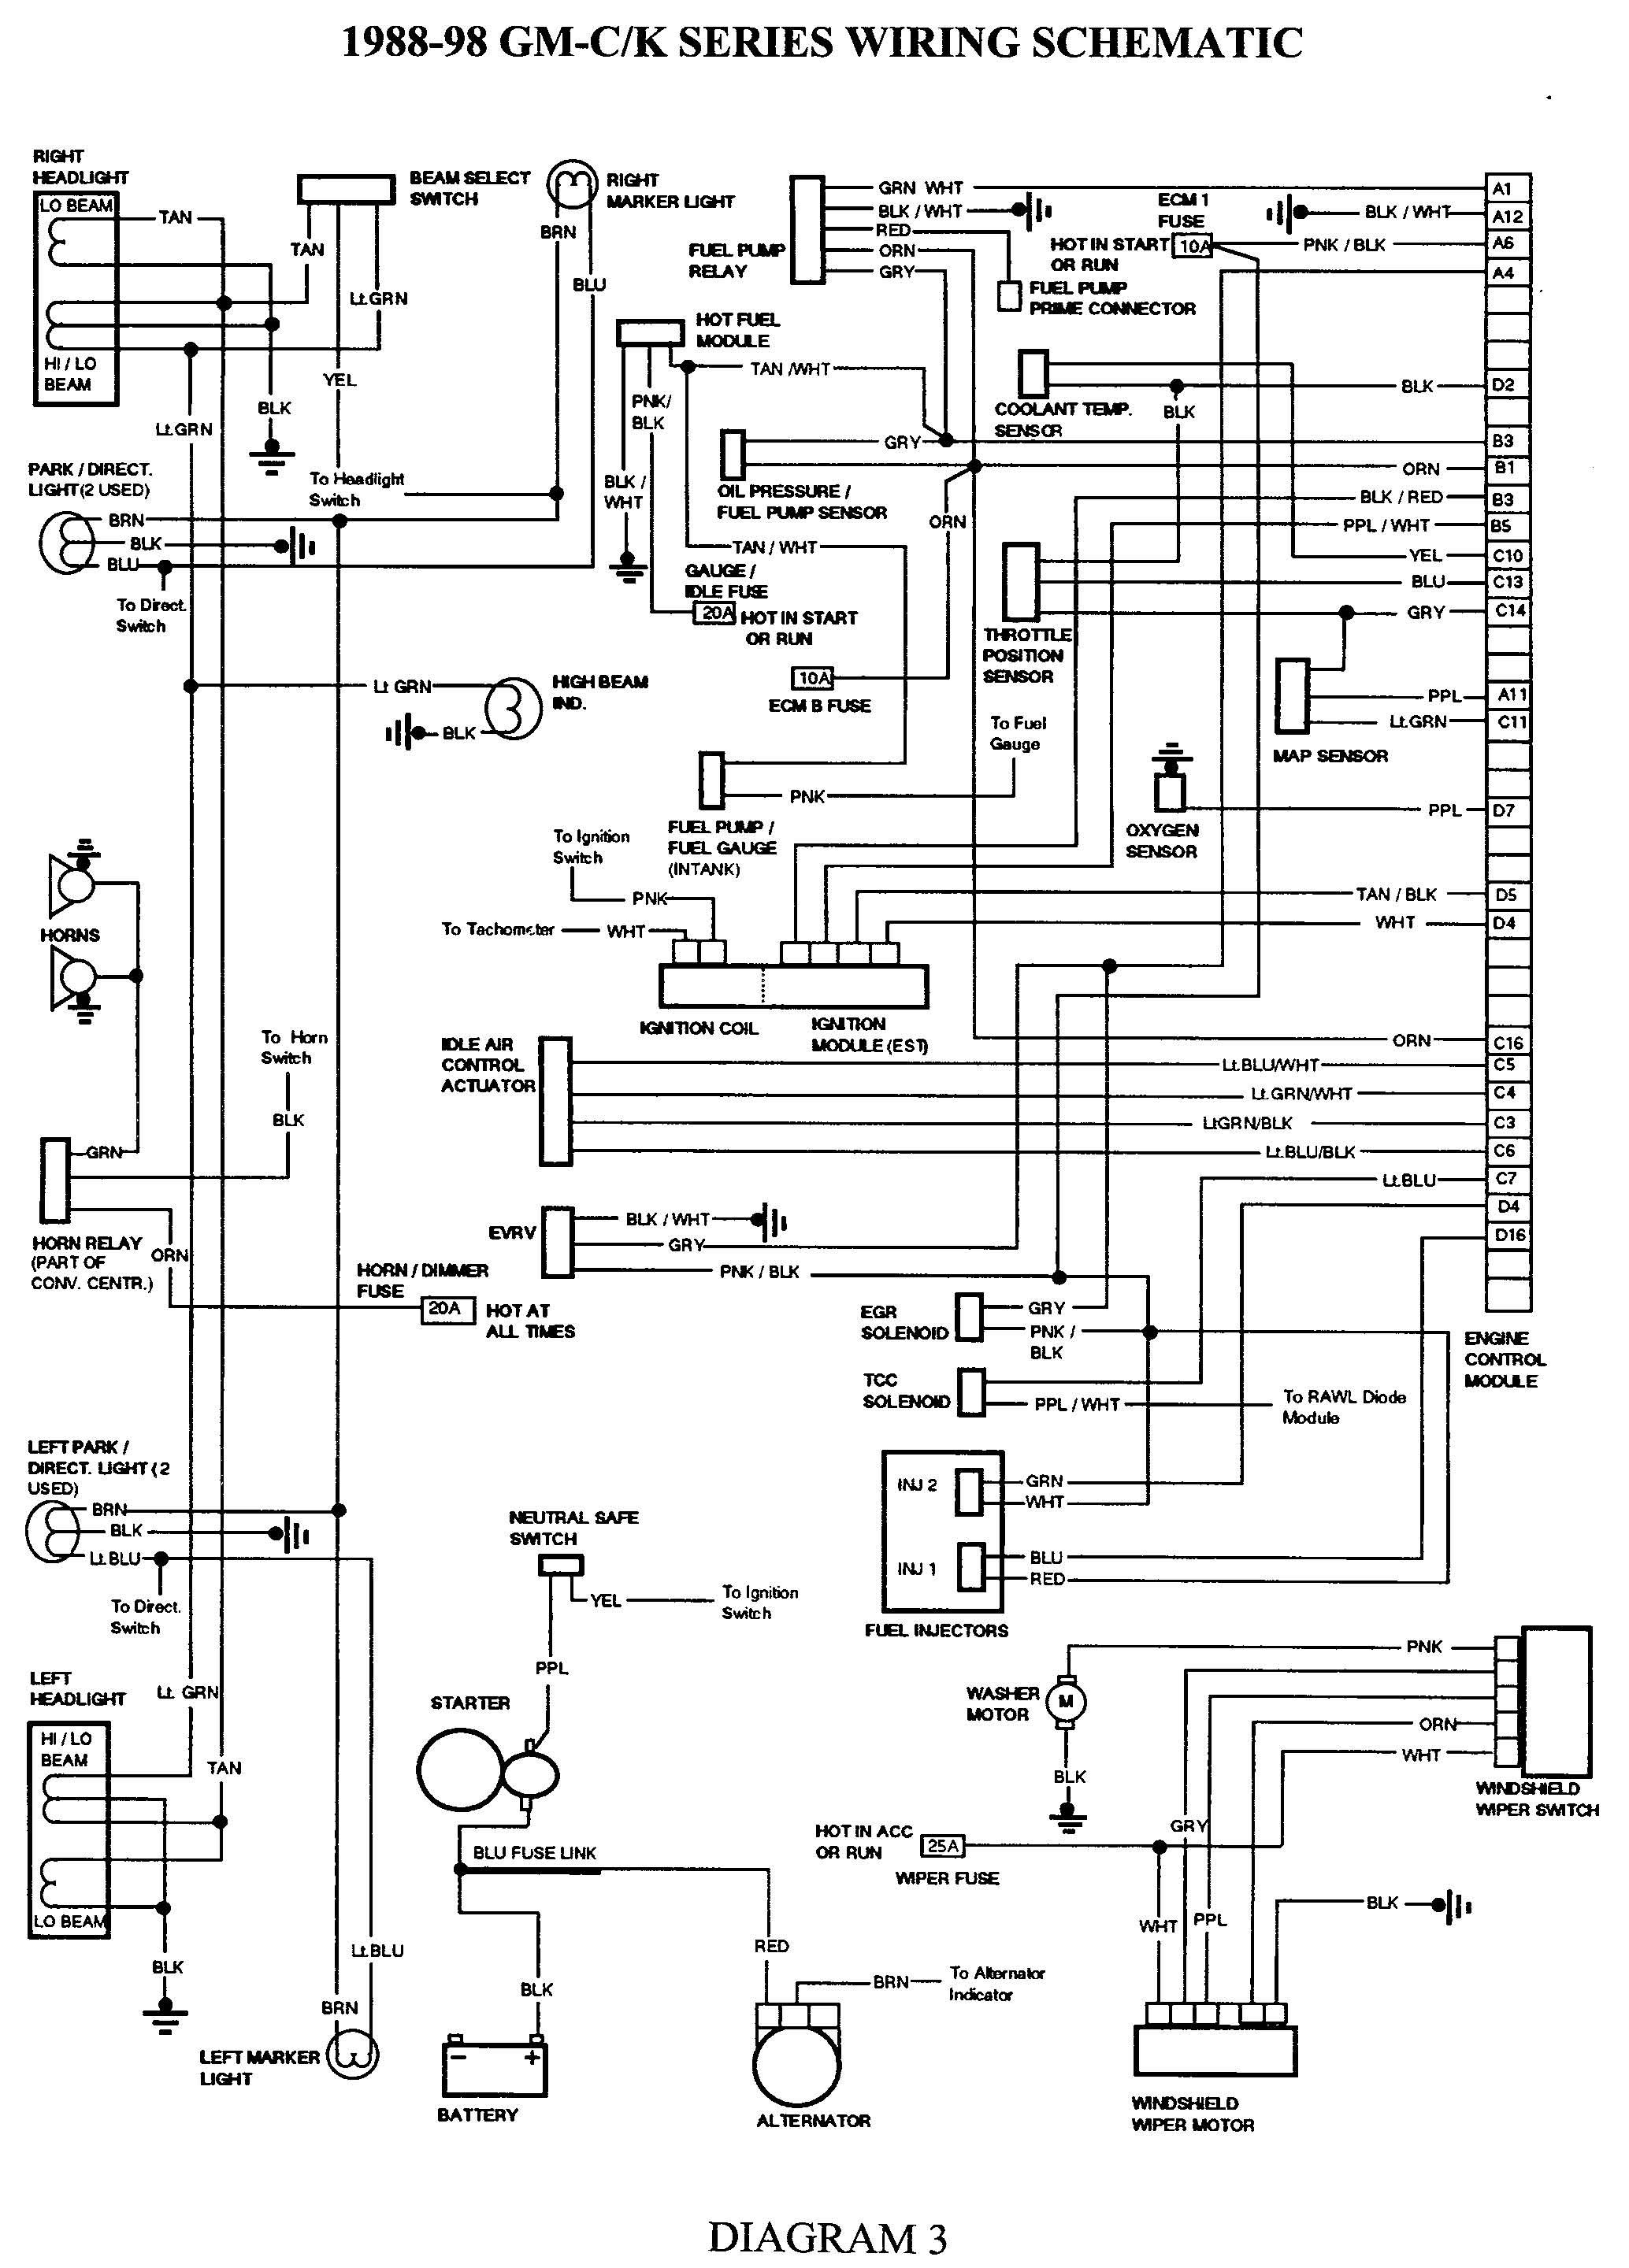 b2f2e5dbdc07dada83ef514f6d4ce3d4 gmc truck wiring diagrams on gm wiring harness diagram 88 98 kc 1965 C10 Wiring-Diagram at alyssarenee.co